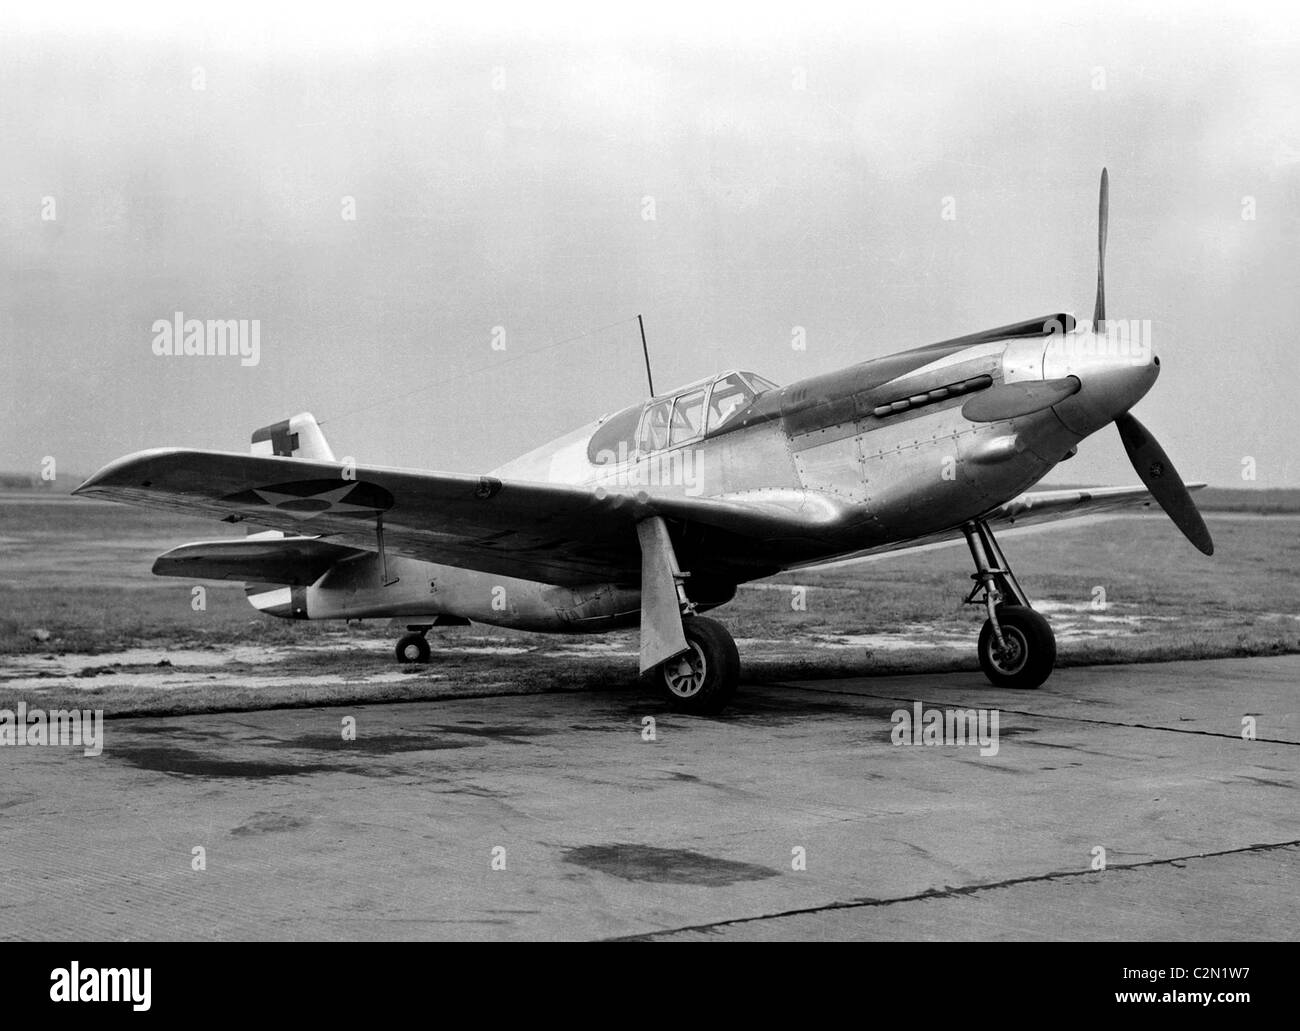 North American Aviation P-51 Mustang was an American long-range single-seat World War II fighter aircraft. - Stock Image